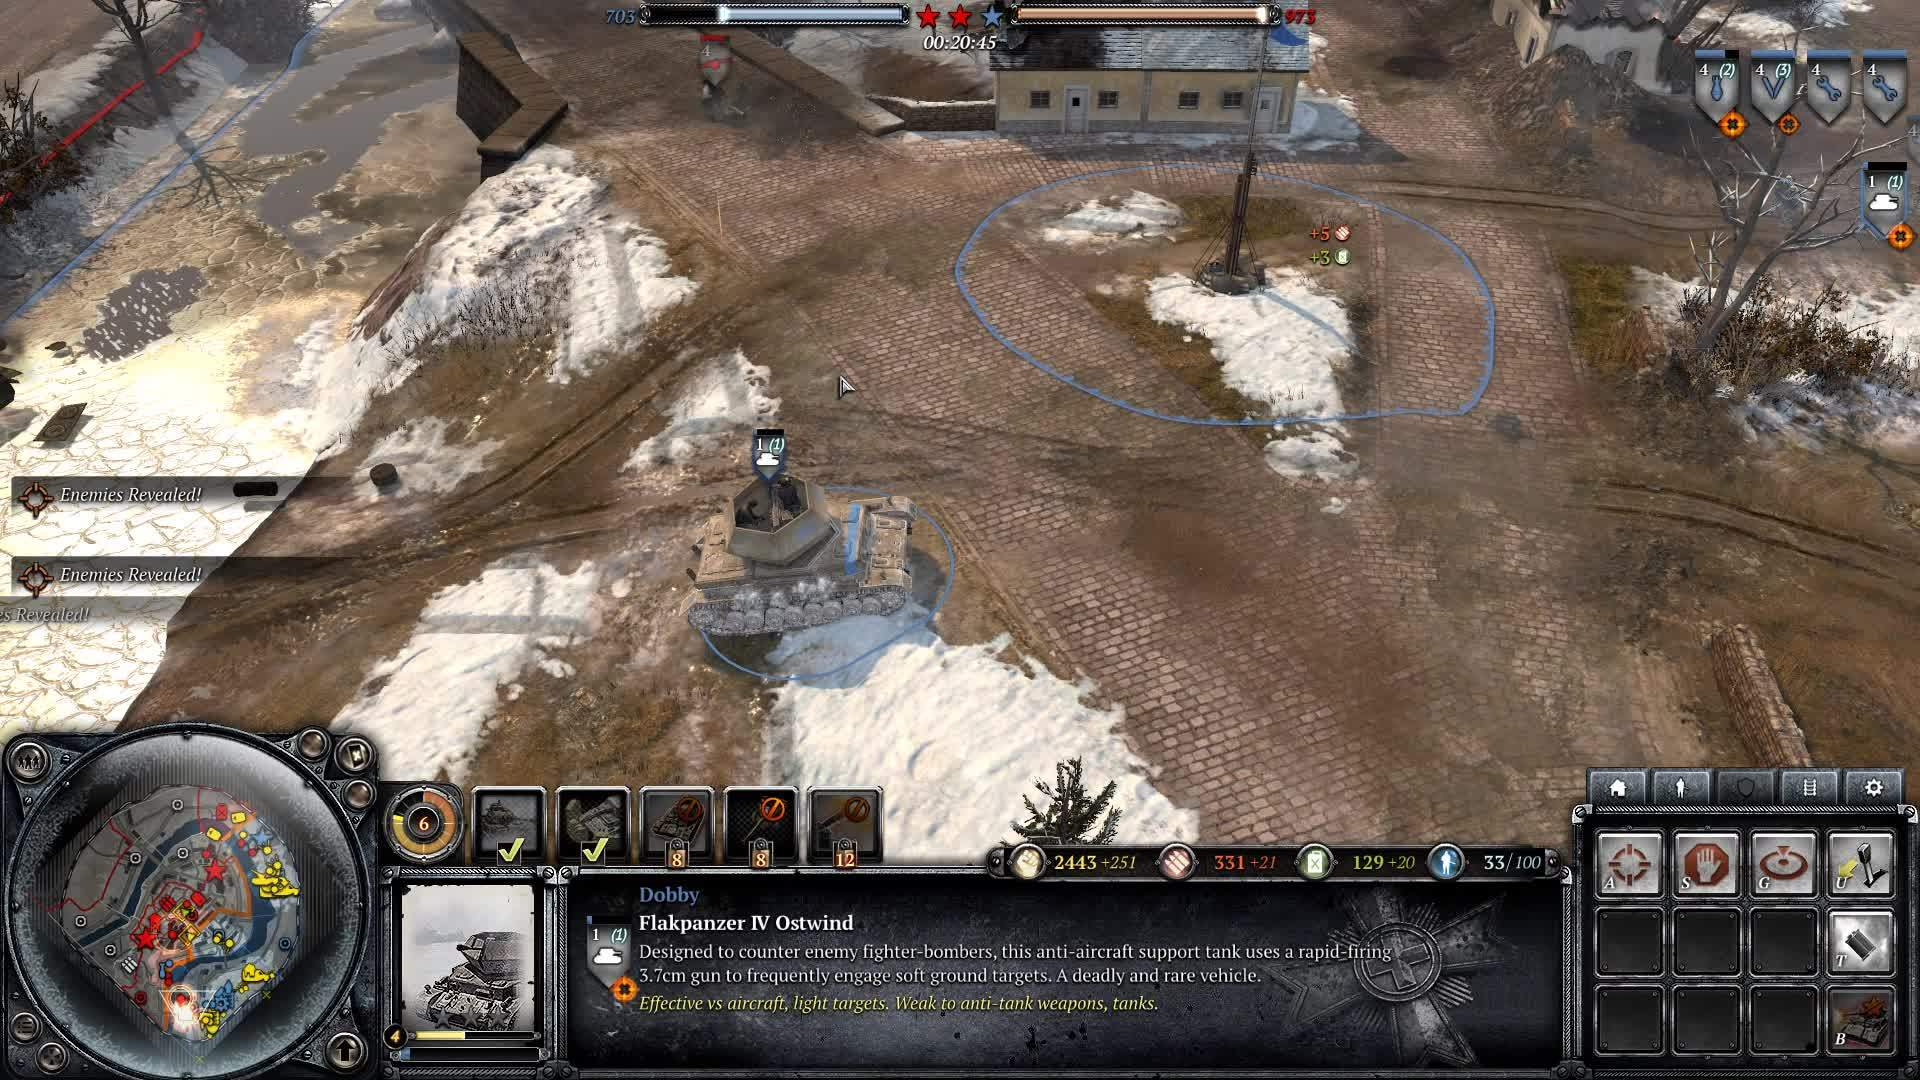 CompanyOfHeroes, companyofheroes, Latest update showing off Germany's new Man-Cannon. (reddit) GIFs